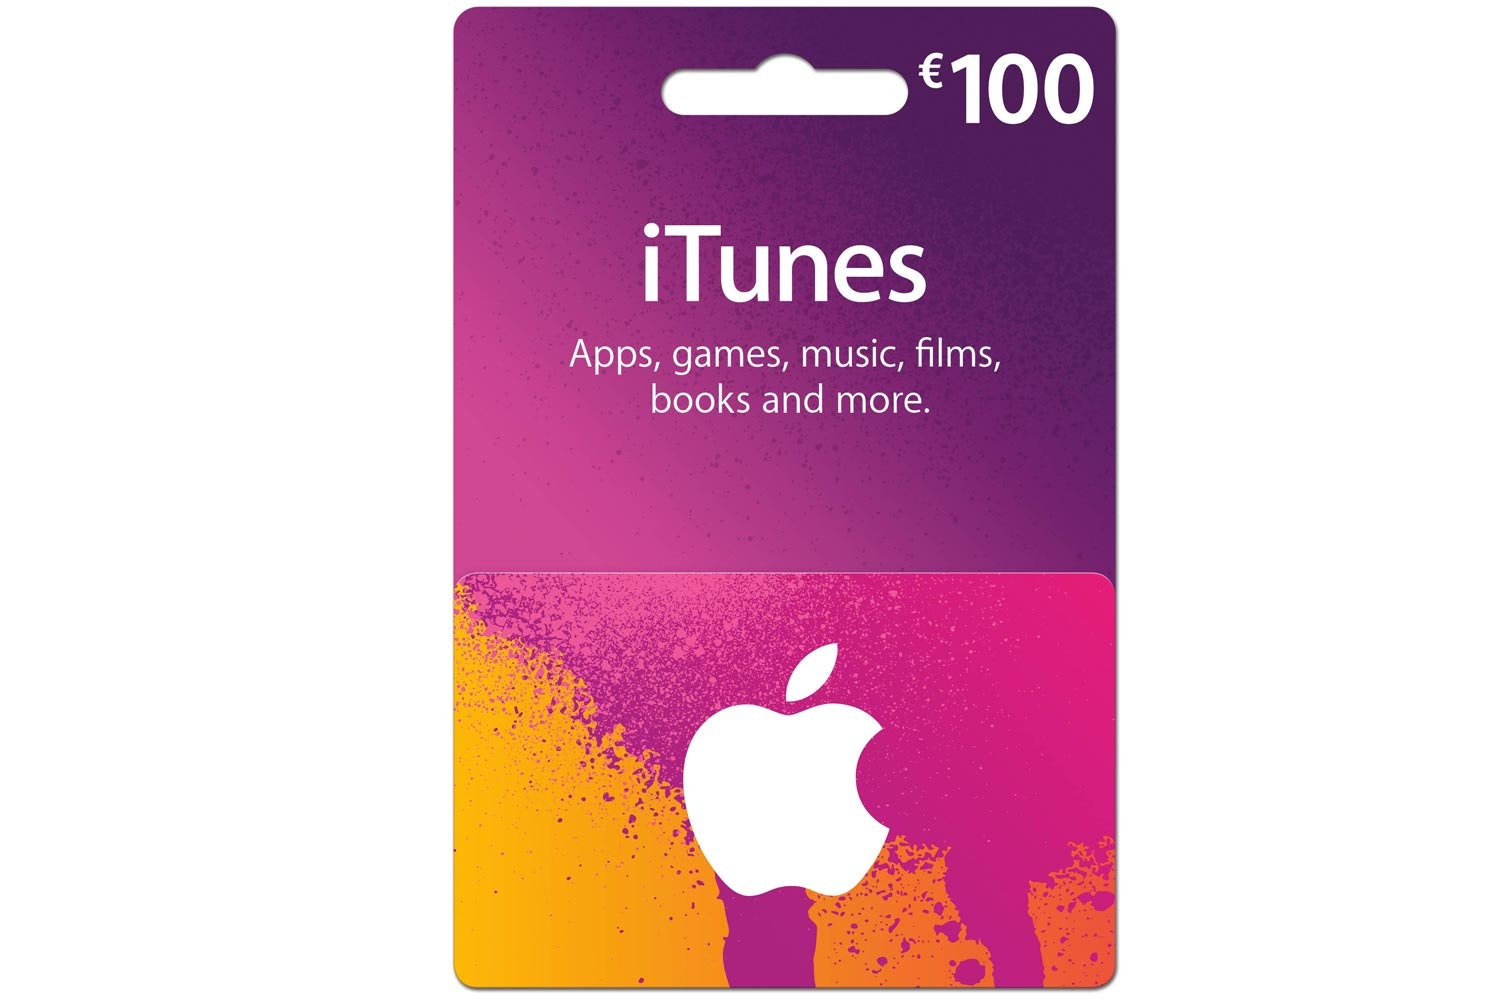 €100 iTunes Gift Card